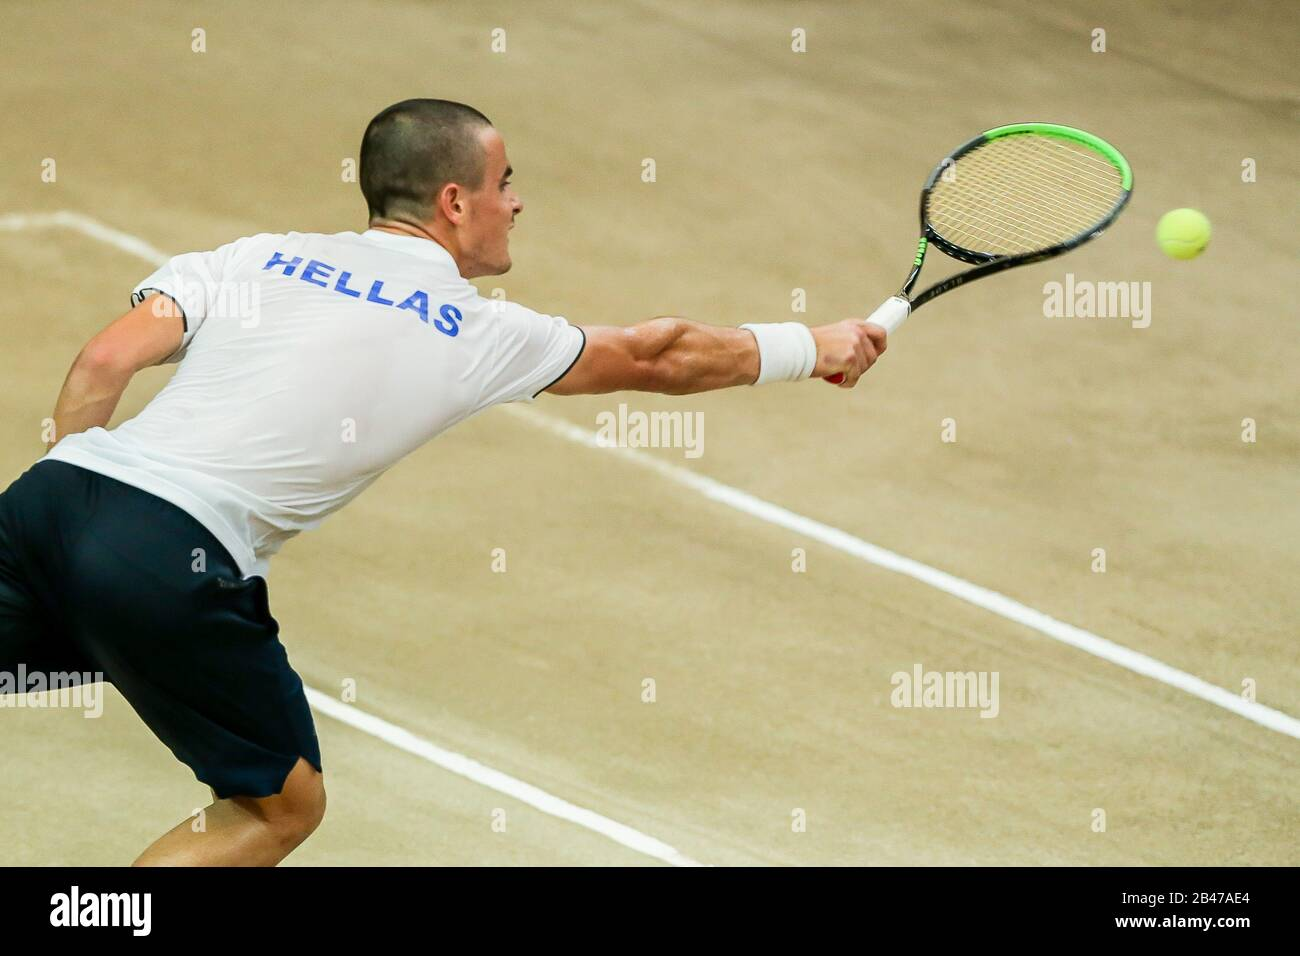 Manila 6th Mar 2020 Petros Tsitsipas Of Greece Returns The Ball During The Singles Match Against Jeson Patrombon Of The Philippines At Davis Cup World Group Ii Play Off Round Between The Philippines